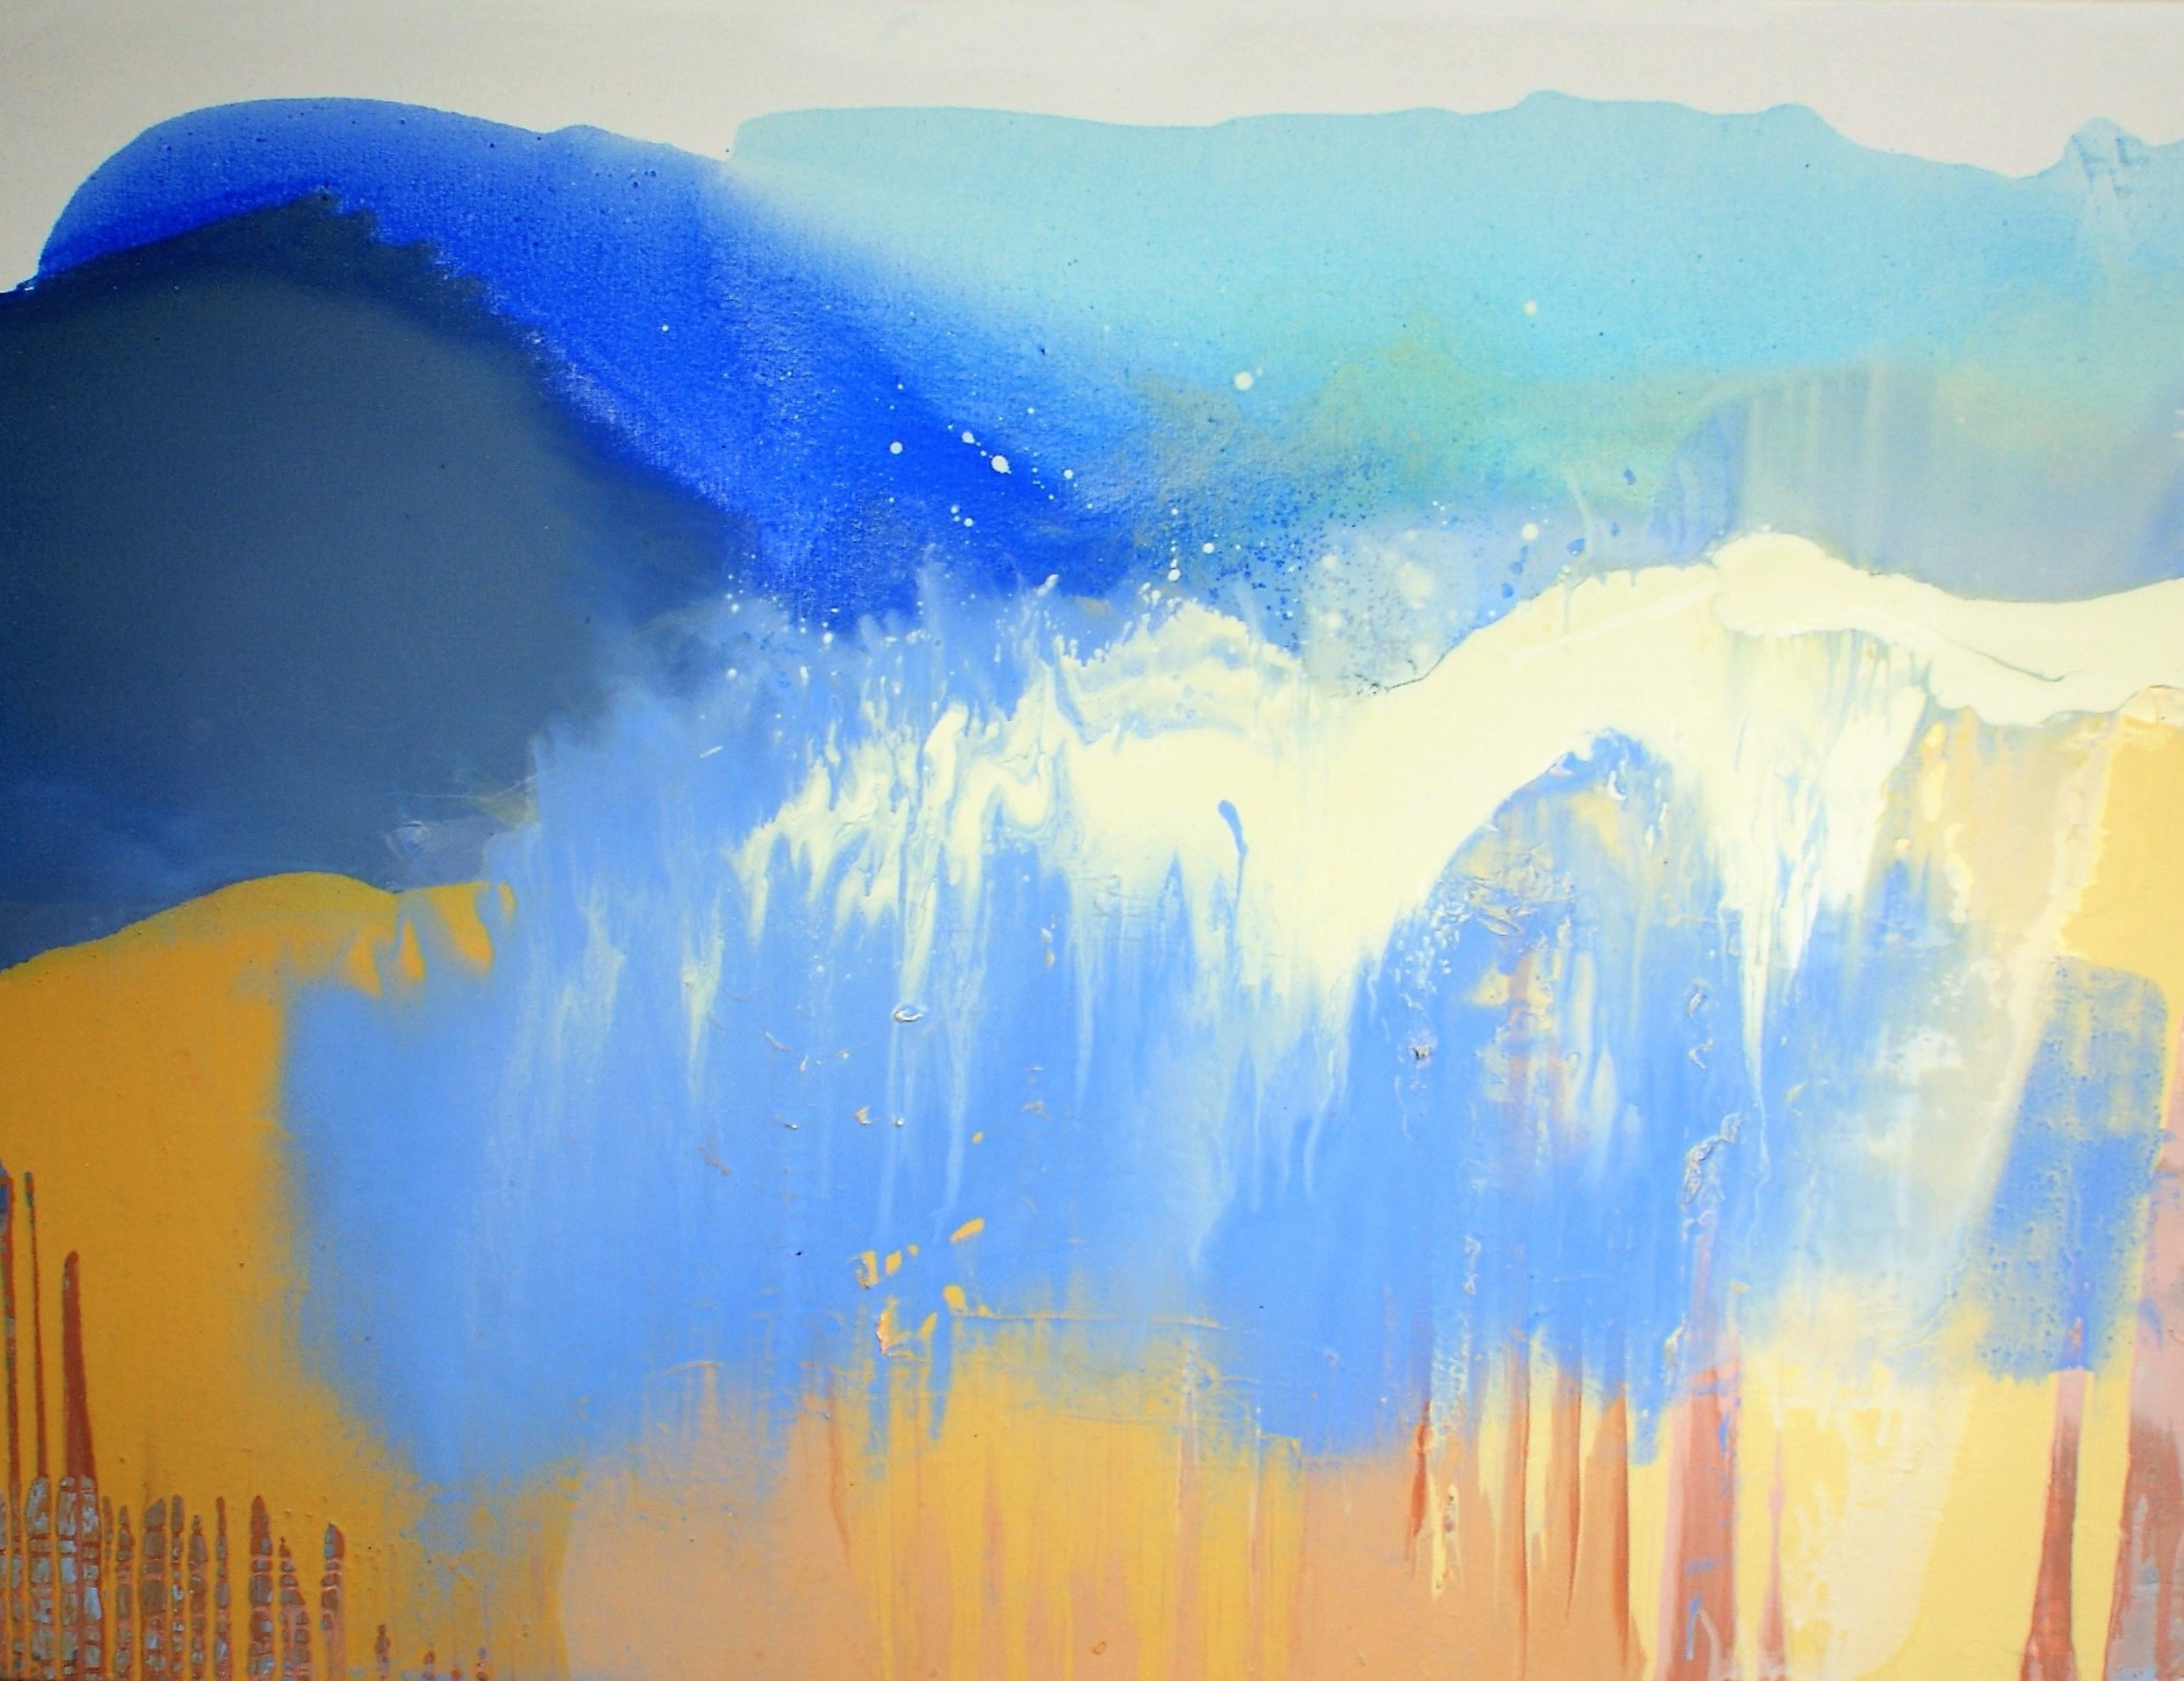 Incoming tide 2019, (oil on canvas, 122x91cm)